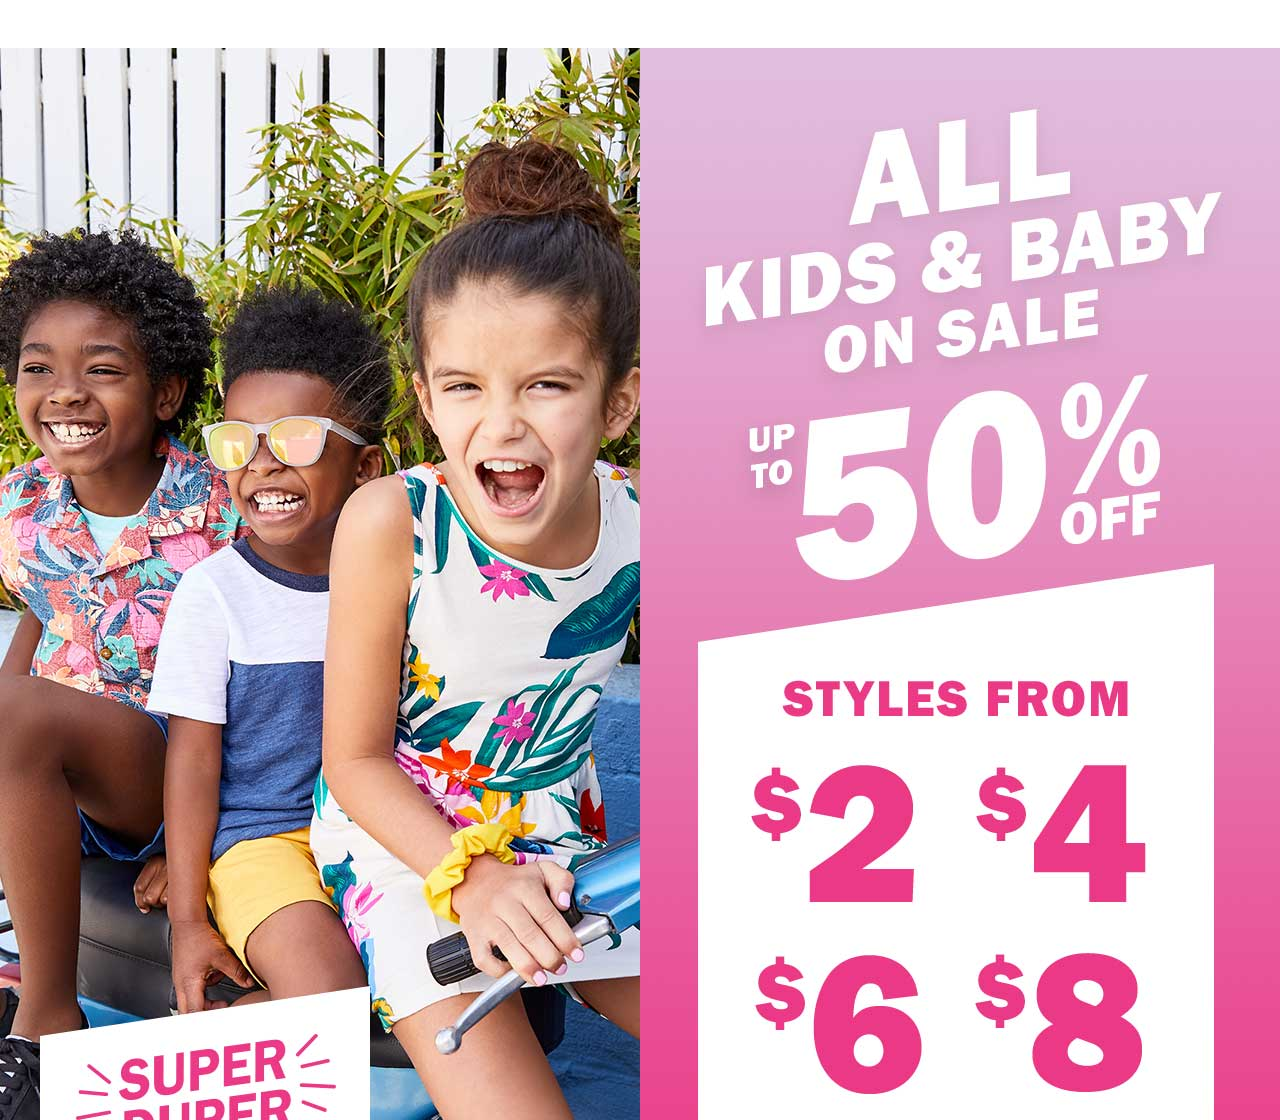 ALL KIDS & BABY ON SALE | UP TO 50% OFF